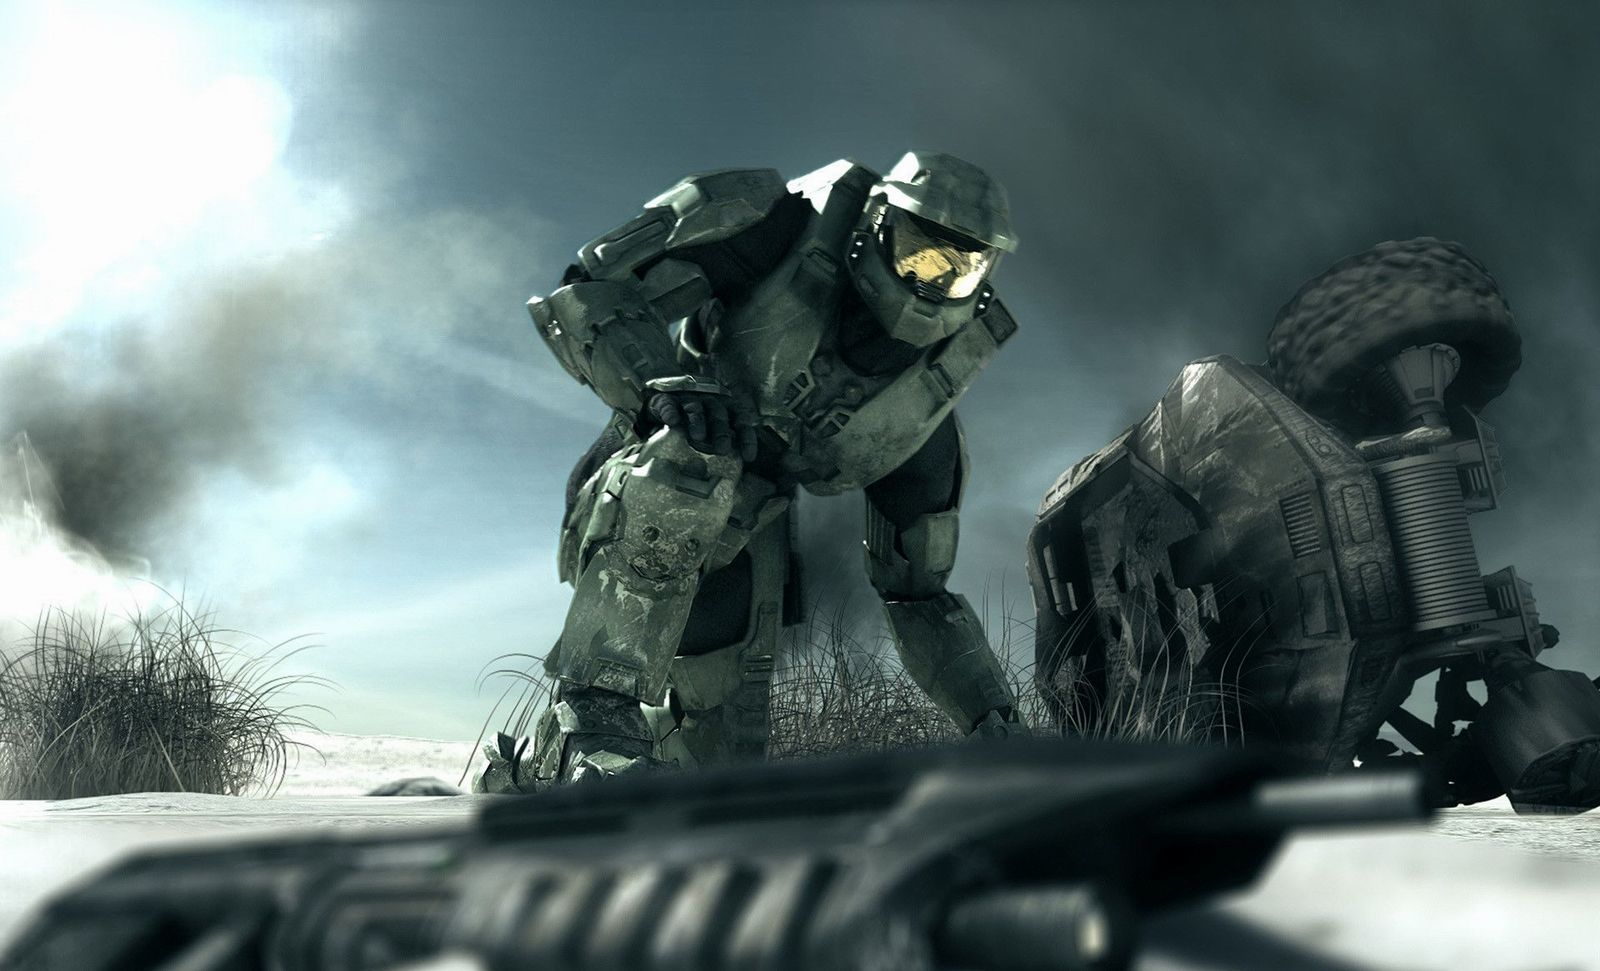 Halo cool Wallpaper